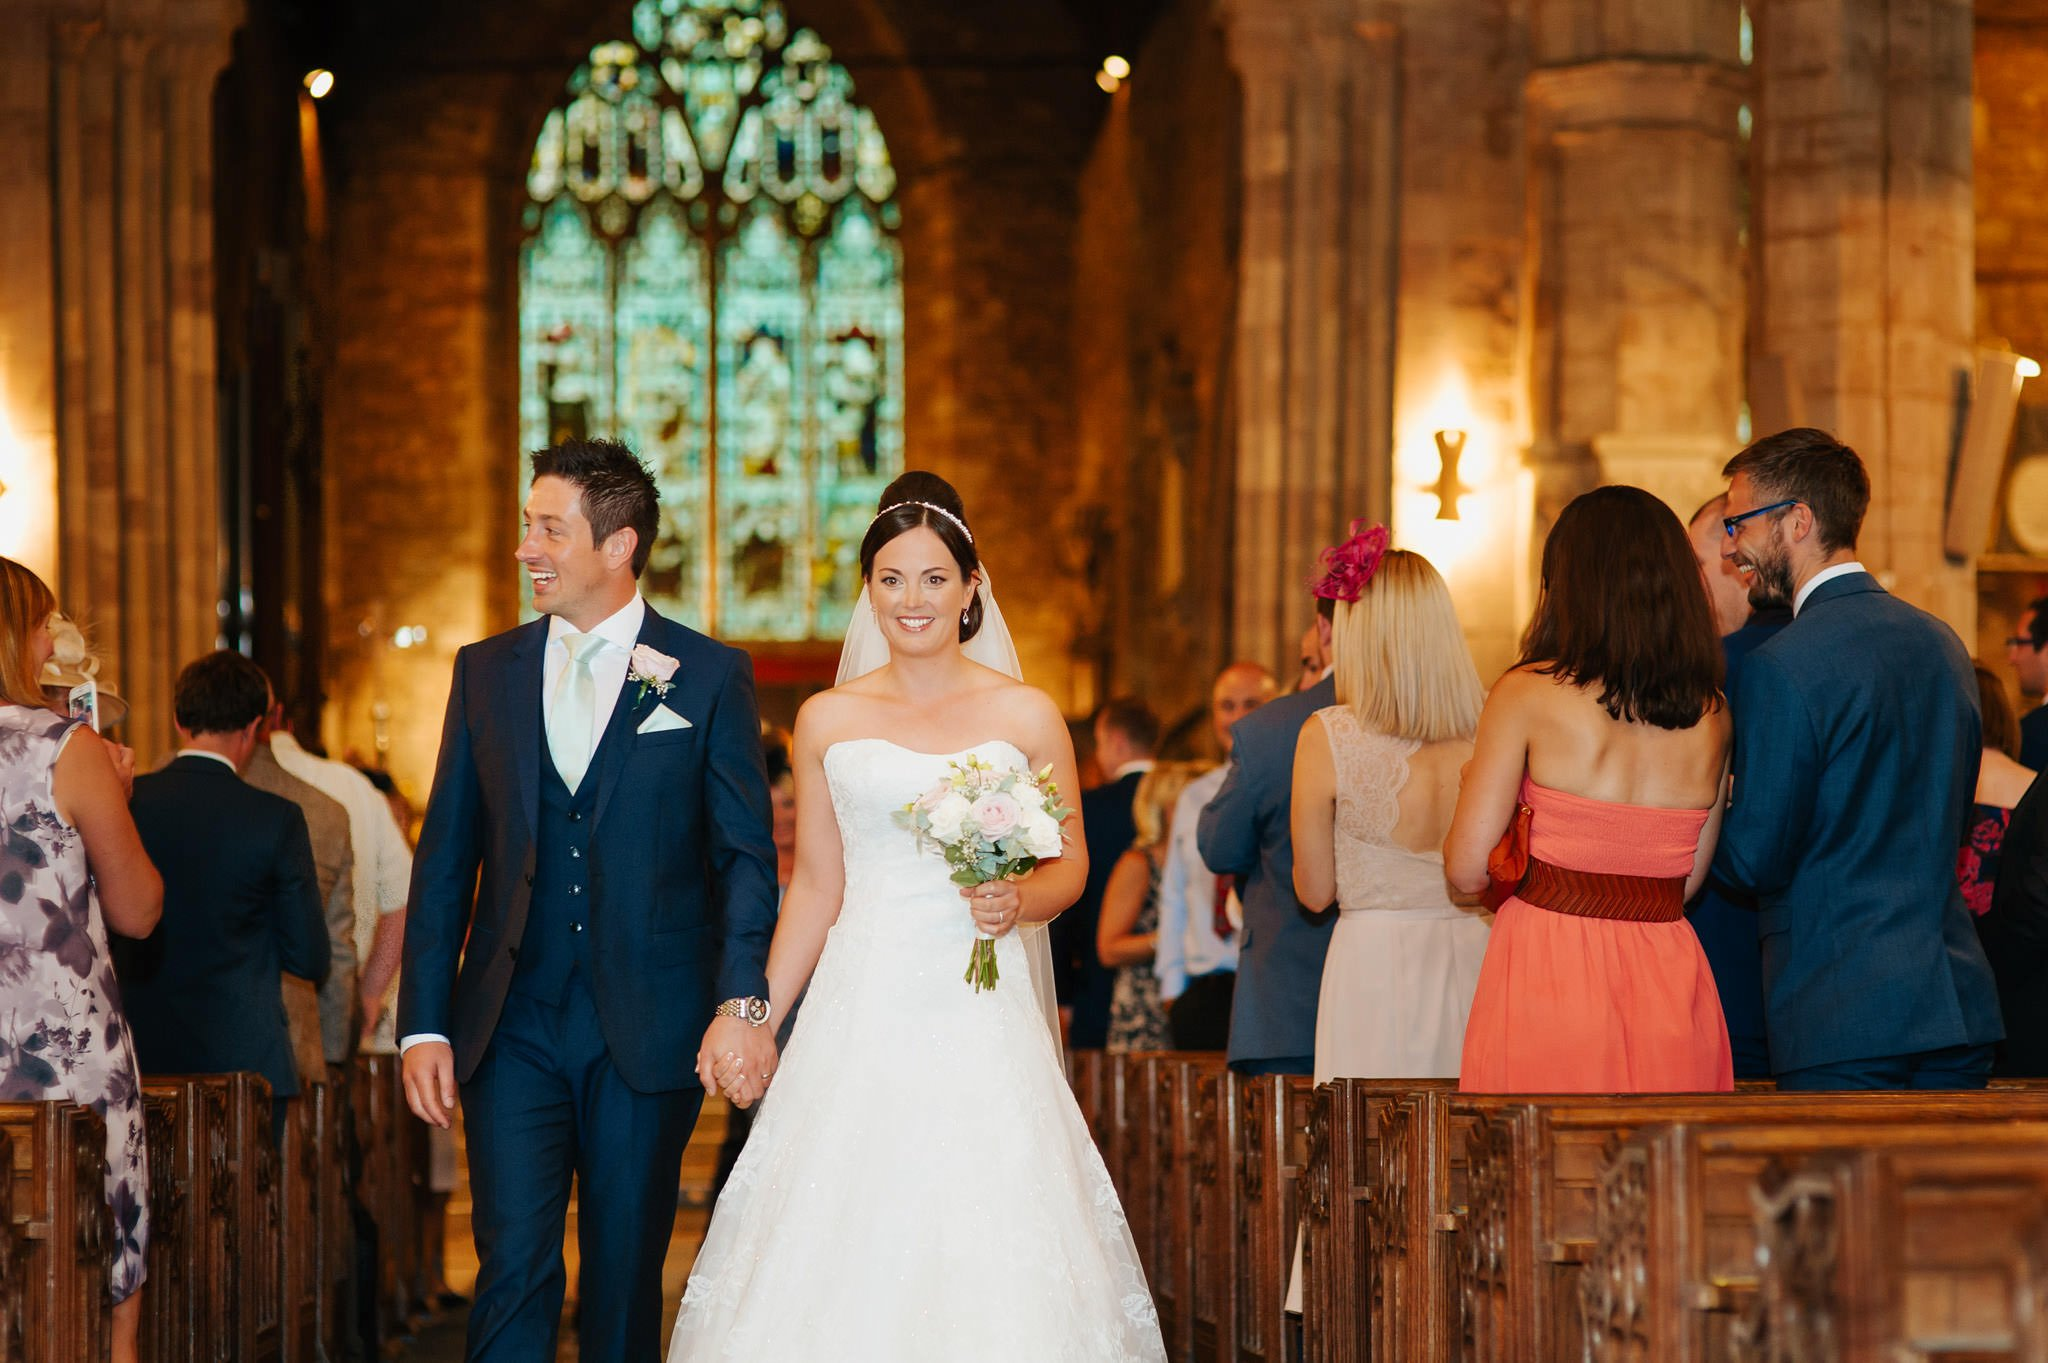 eastnor castle wedding pictures 37 - Eastnor Castle wedding photographer Herefordshire, West Midlands - Sarah + Dean